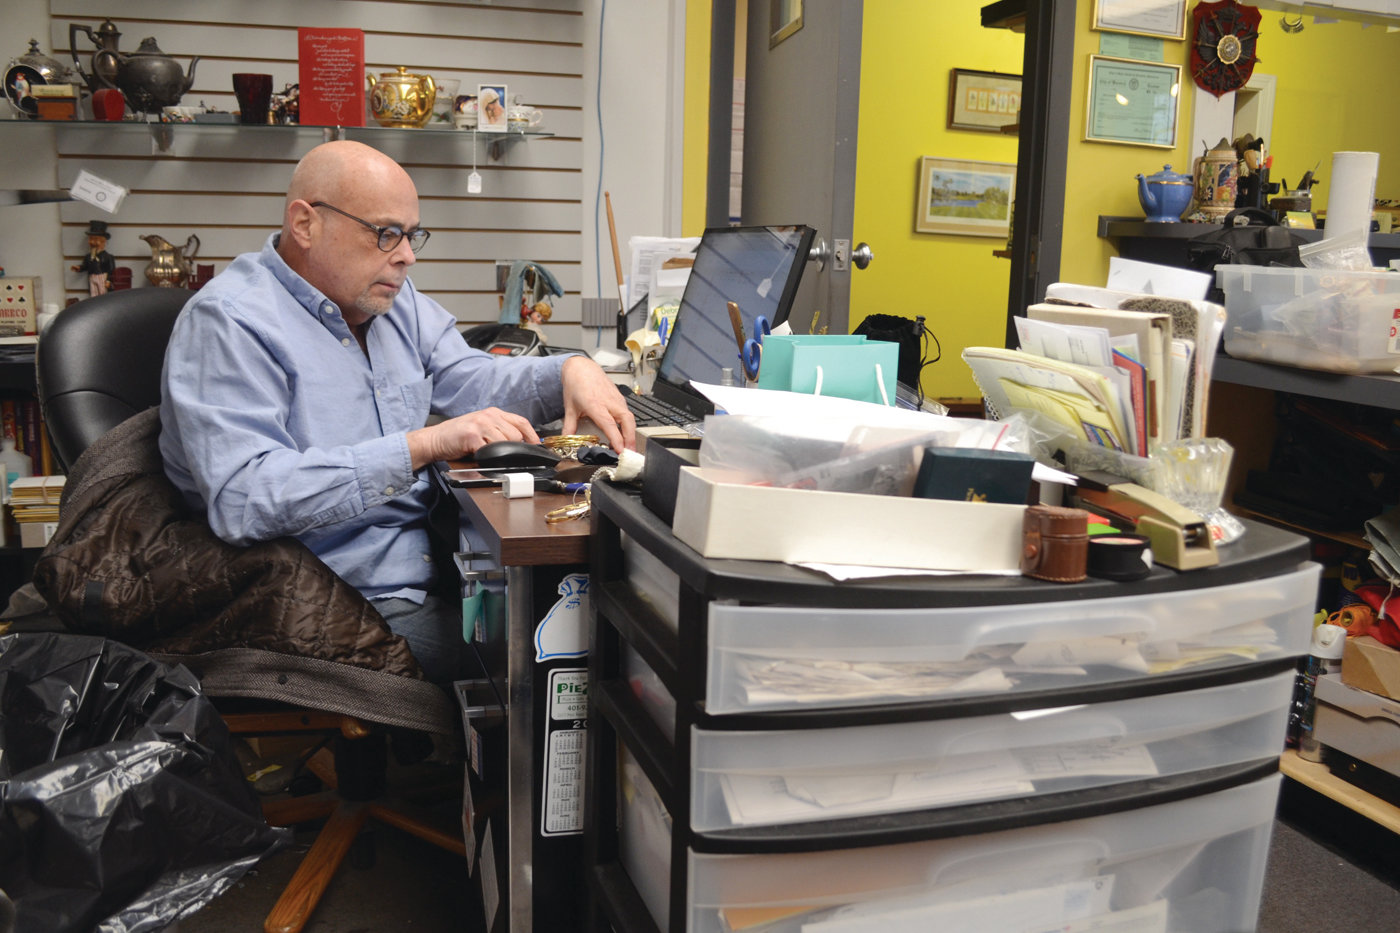 HARD AT WORK: Gold & Silver Jewelry Outlet owner Steve Melucci said the gold and silver markets are currently at a six-year high, and business is usually booming when that happens.